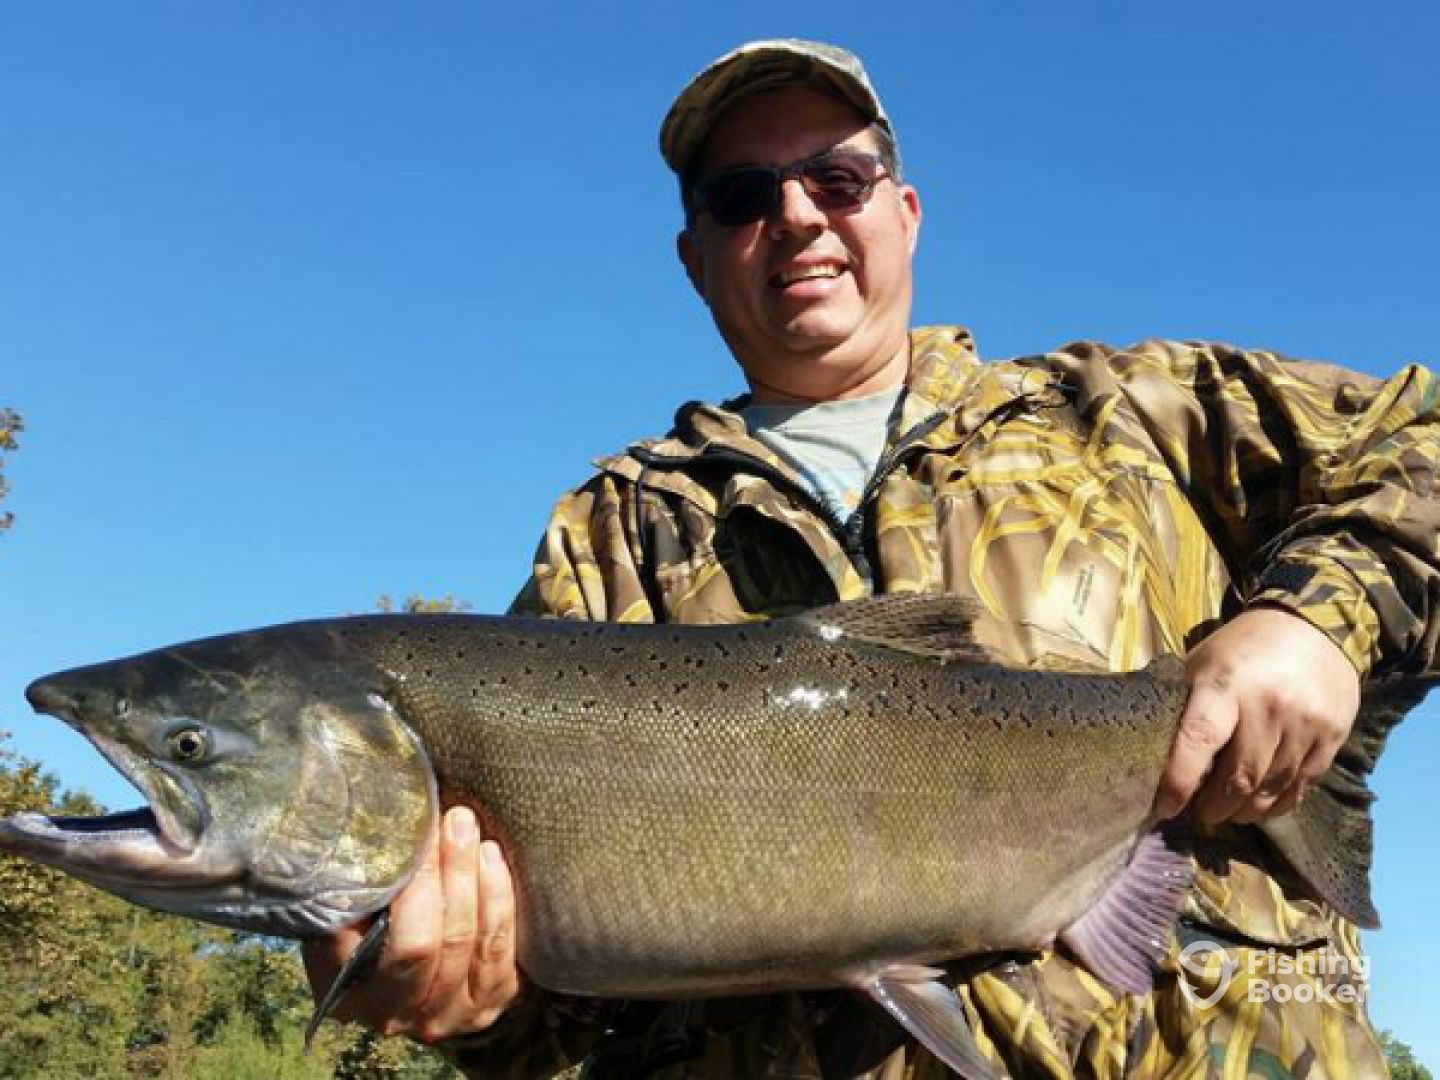 NorCal Fish & Fowl Guide Service